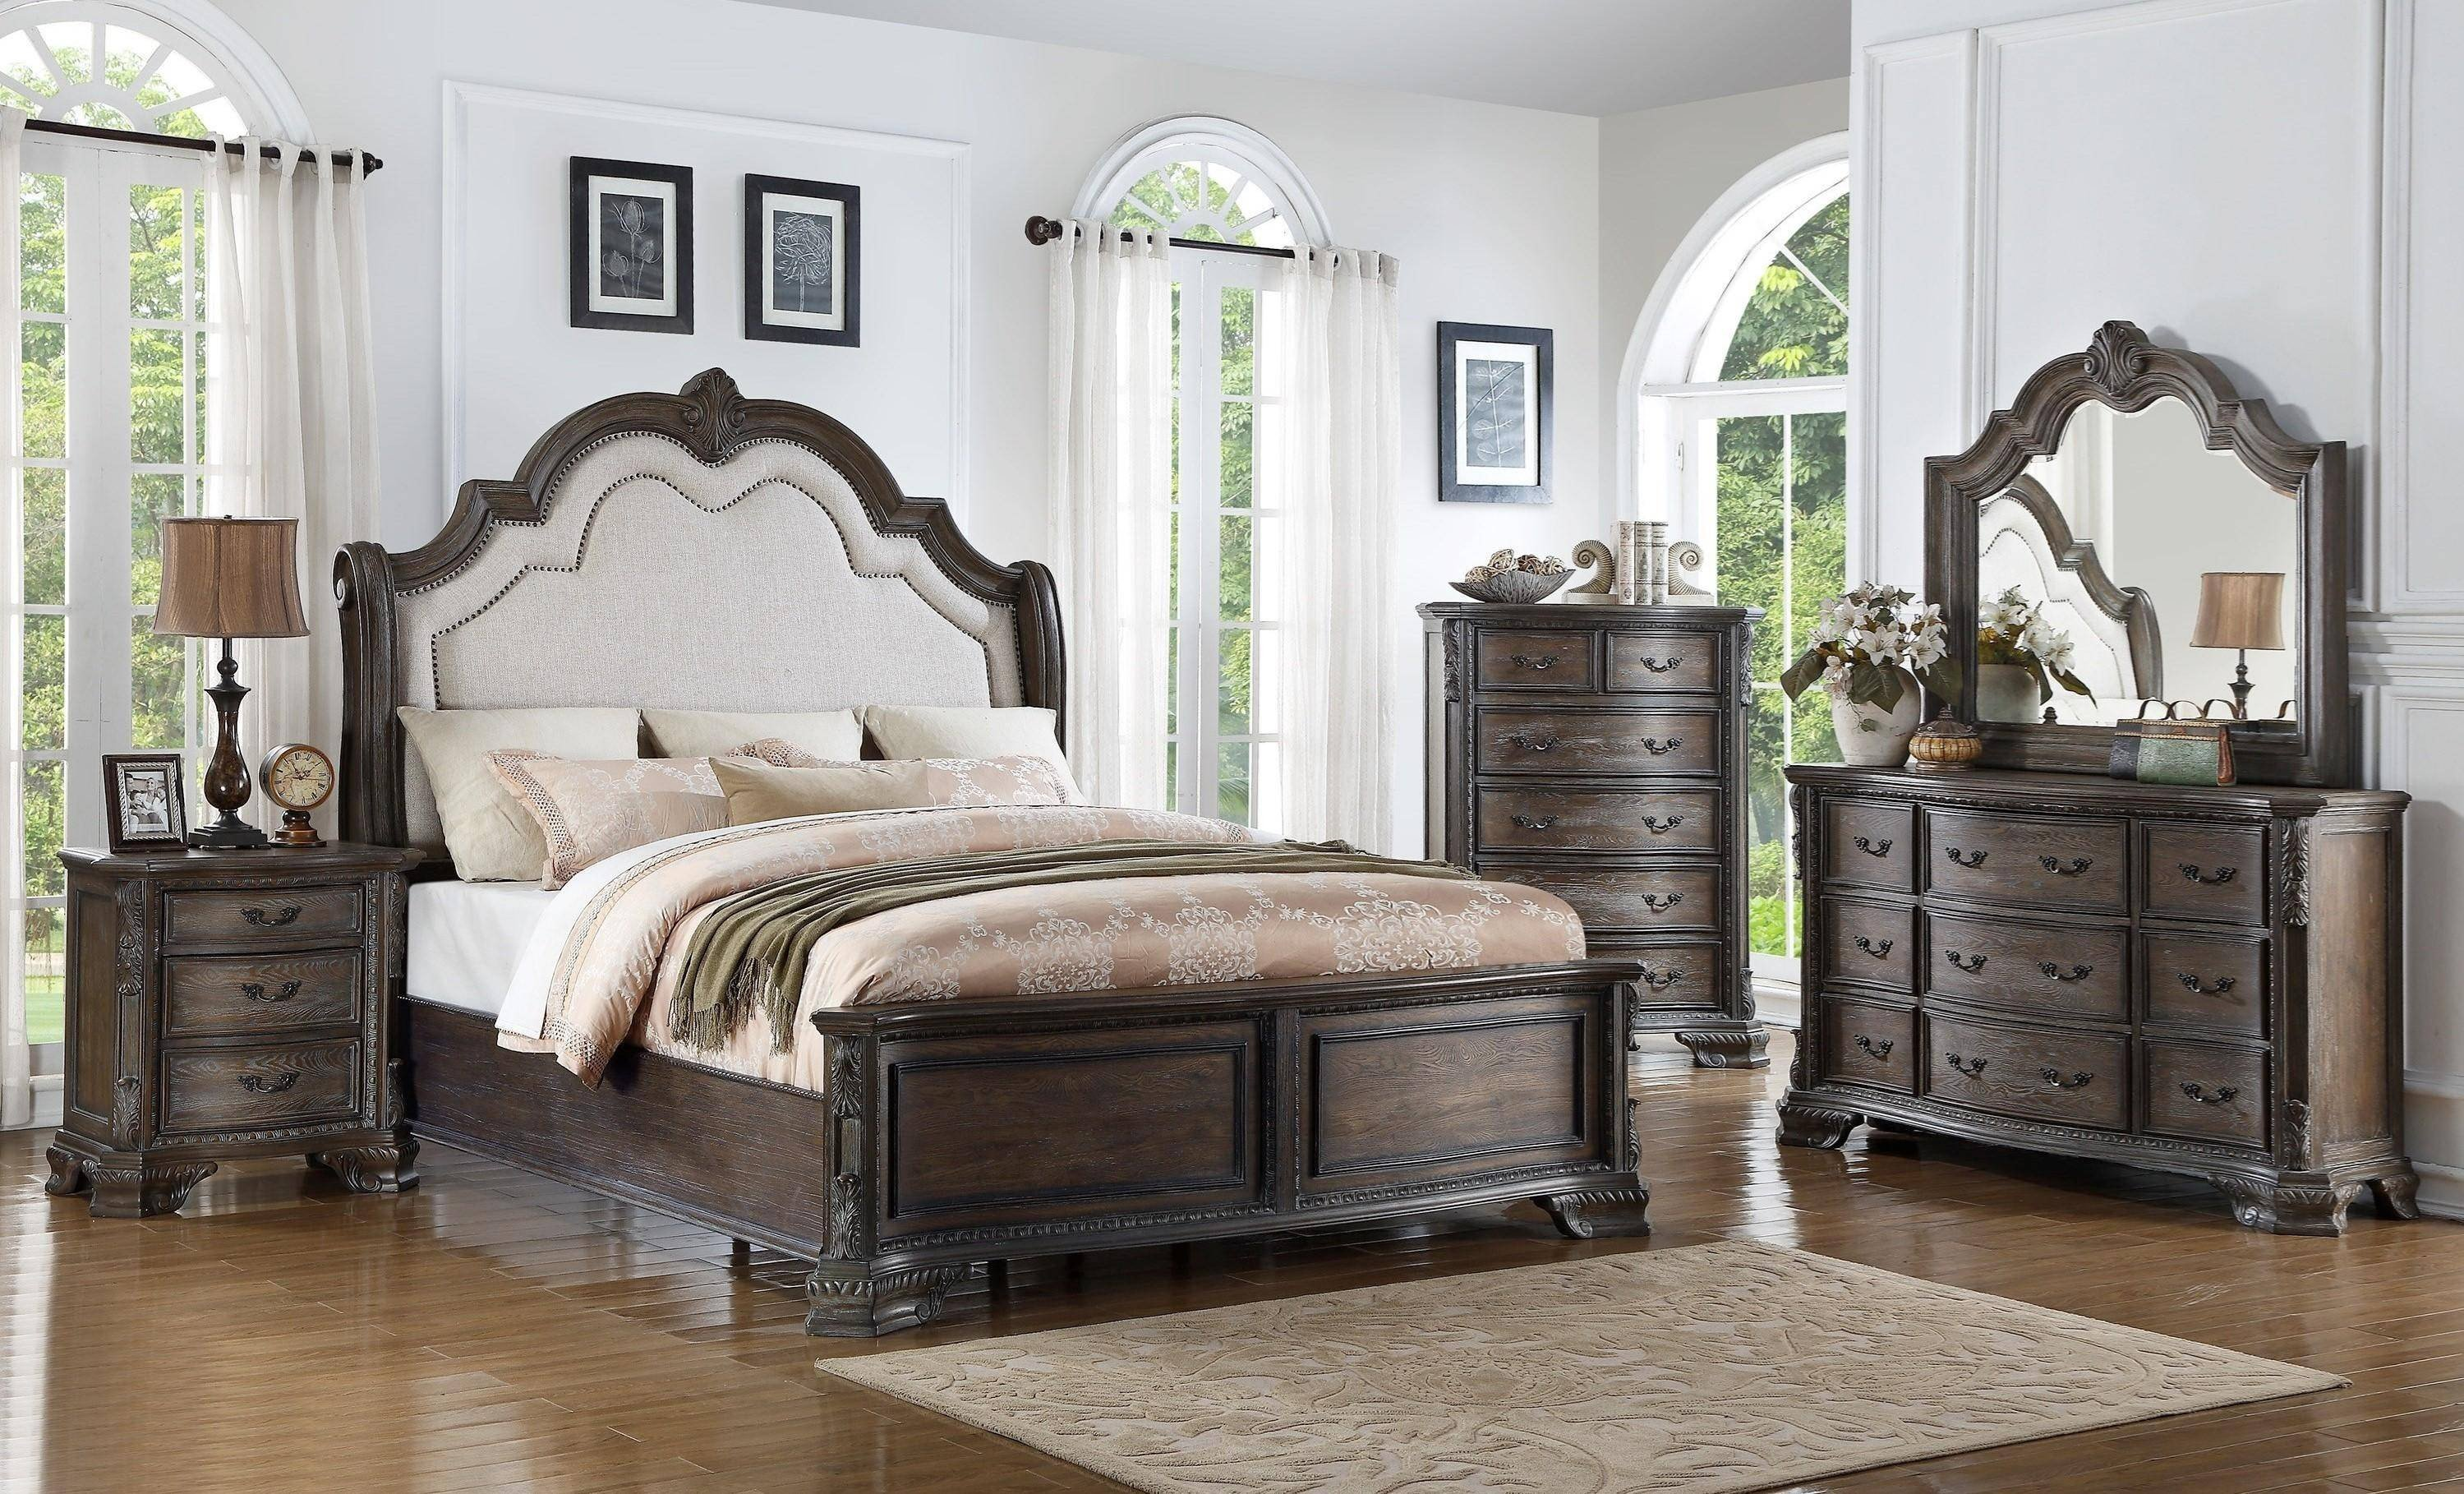 Bedroom Set Full Size Bed Lovely Crown Mark B1120 Sheffield Queen Panel Bed In Gray Fabric